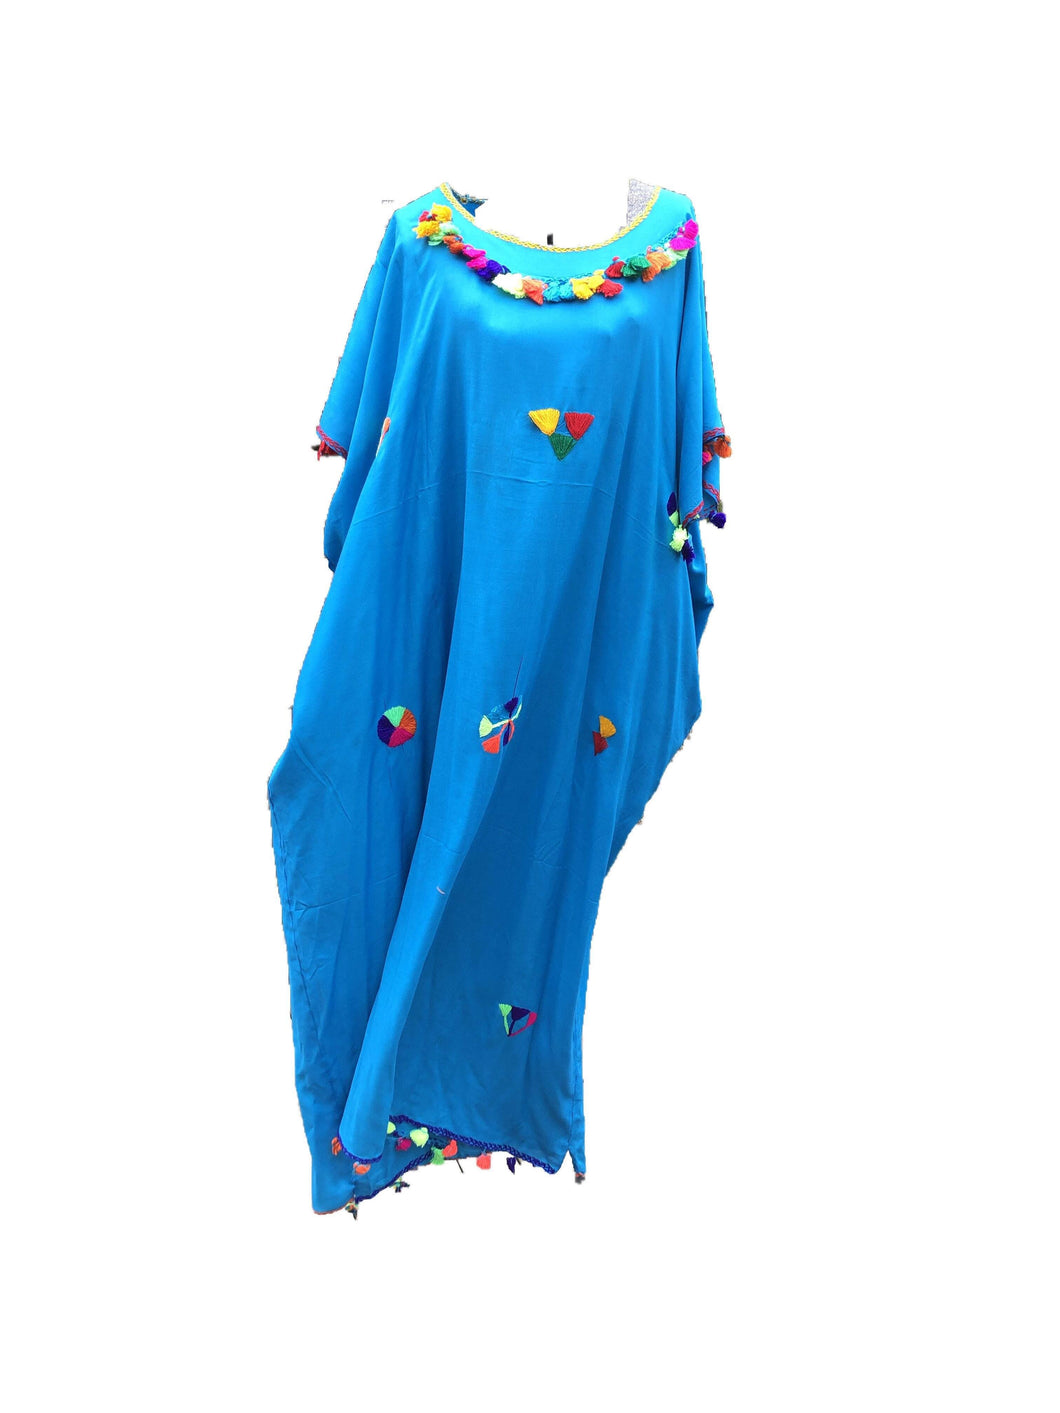 Festive Women's Embroidered Moroccan Lightweight Kaftan Dress with Pompoms - Turquoise Kaftans